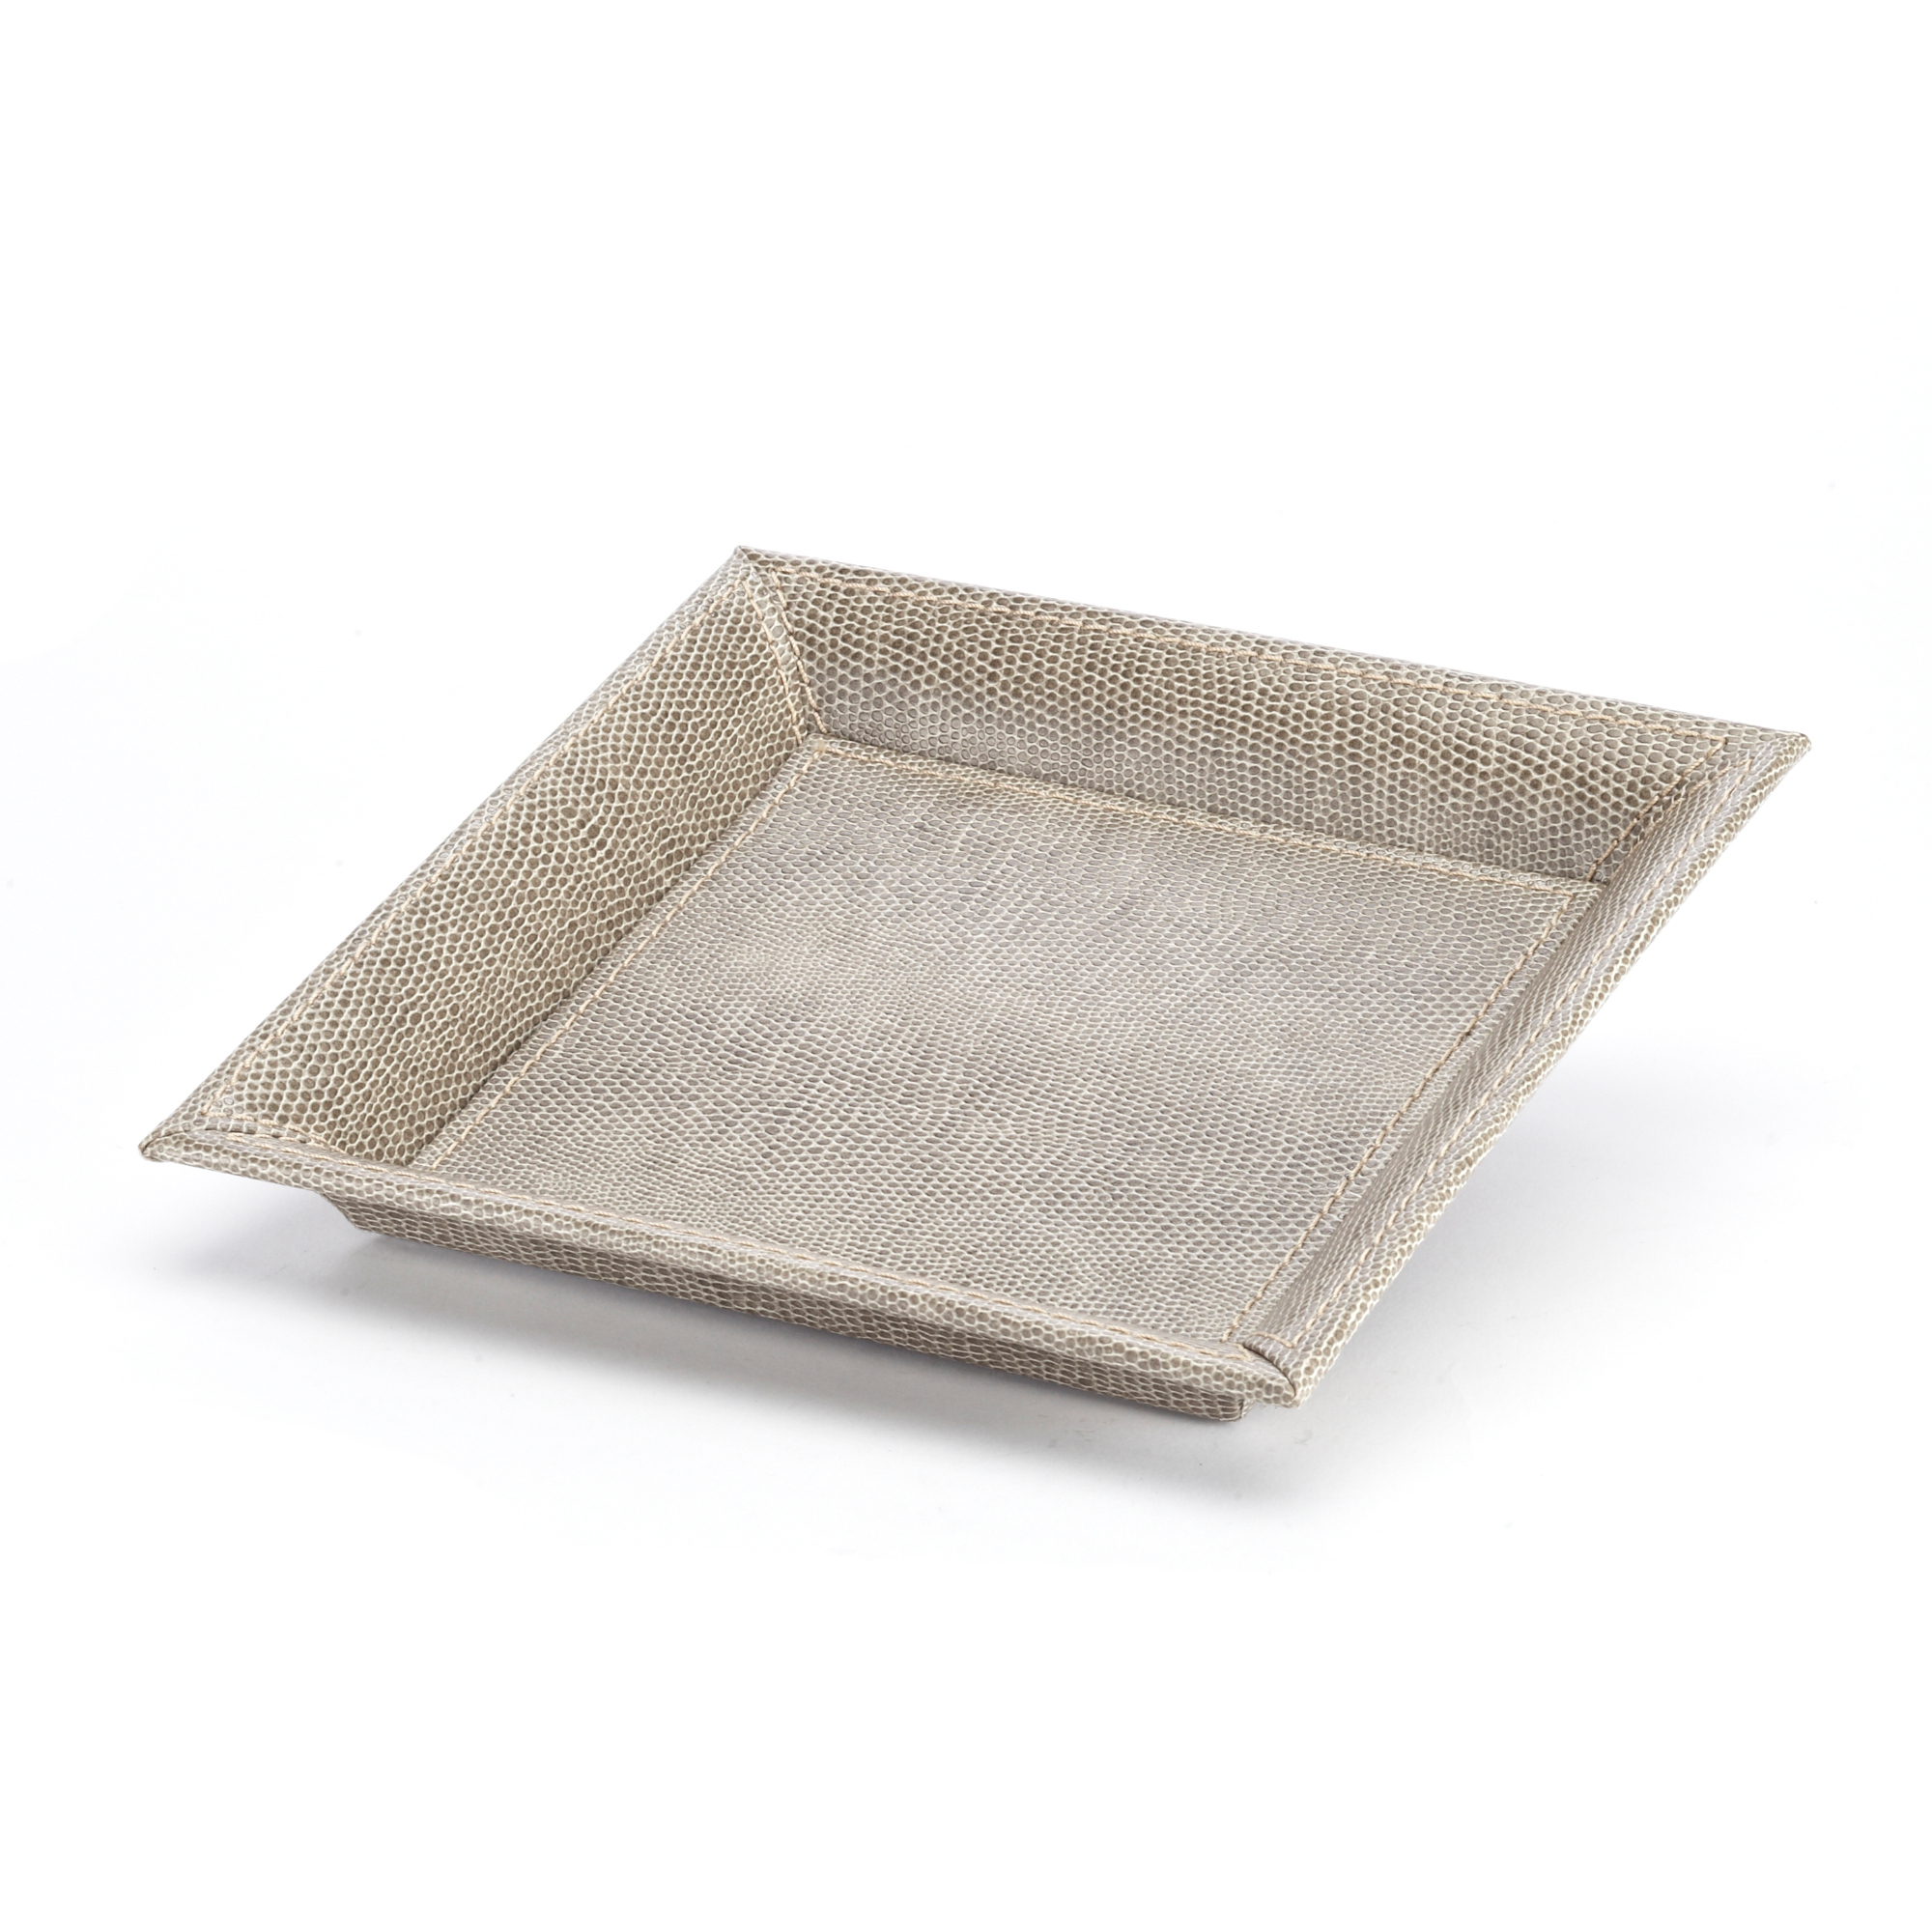 Faux Leather Drink Tray, Gray